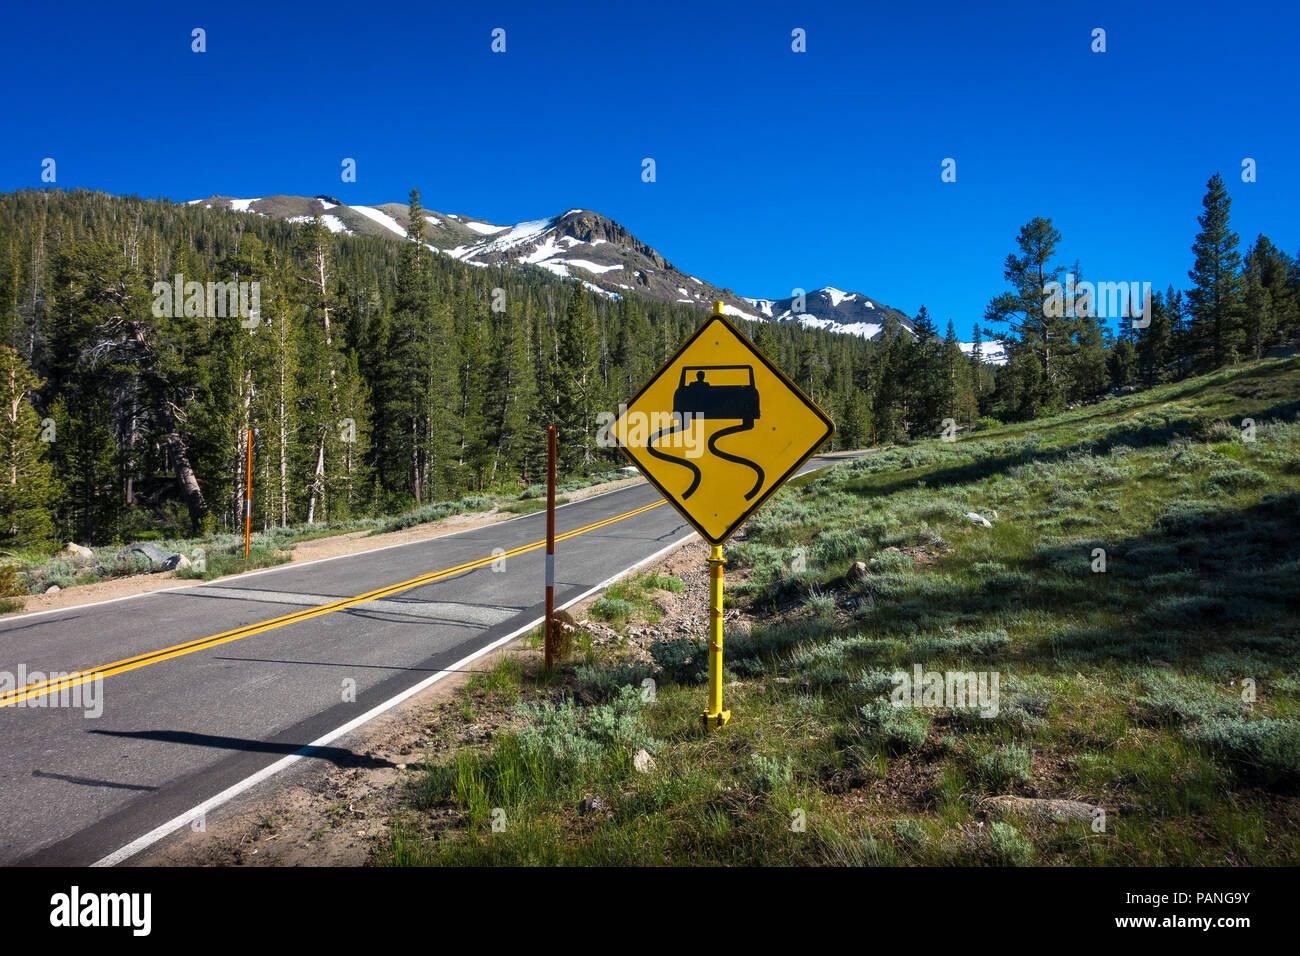 Yellow 'slippery road' sign with snowy forest peaks - Highway 108 Roadside, California - Stock Image